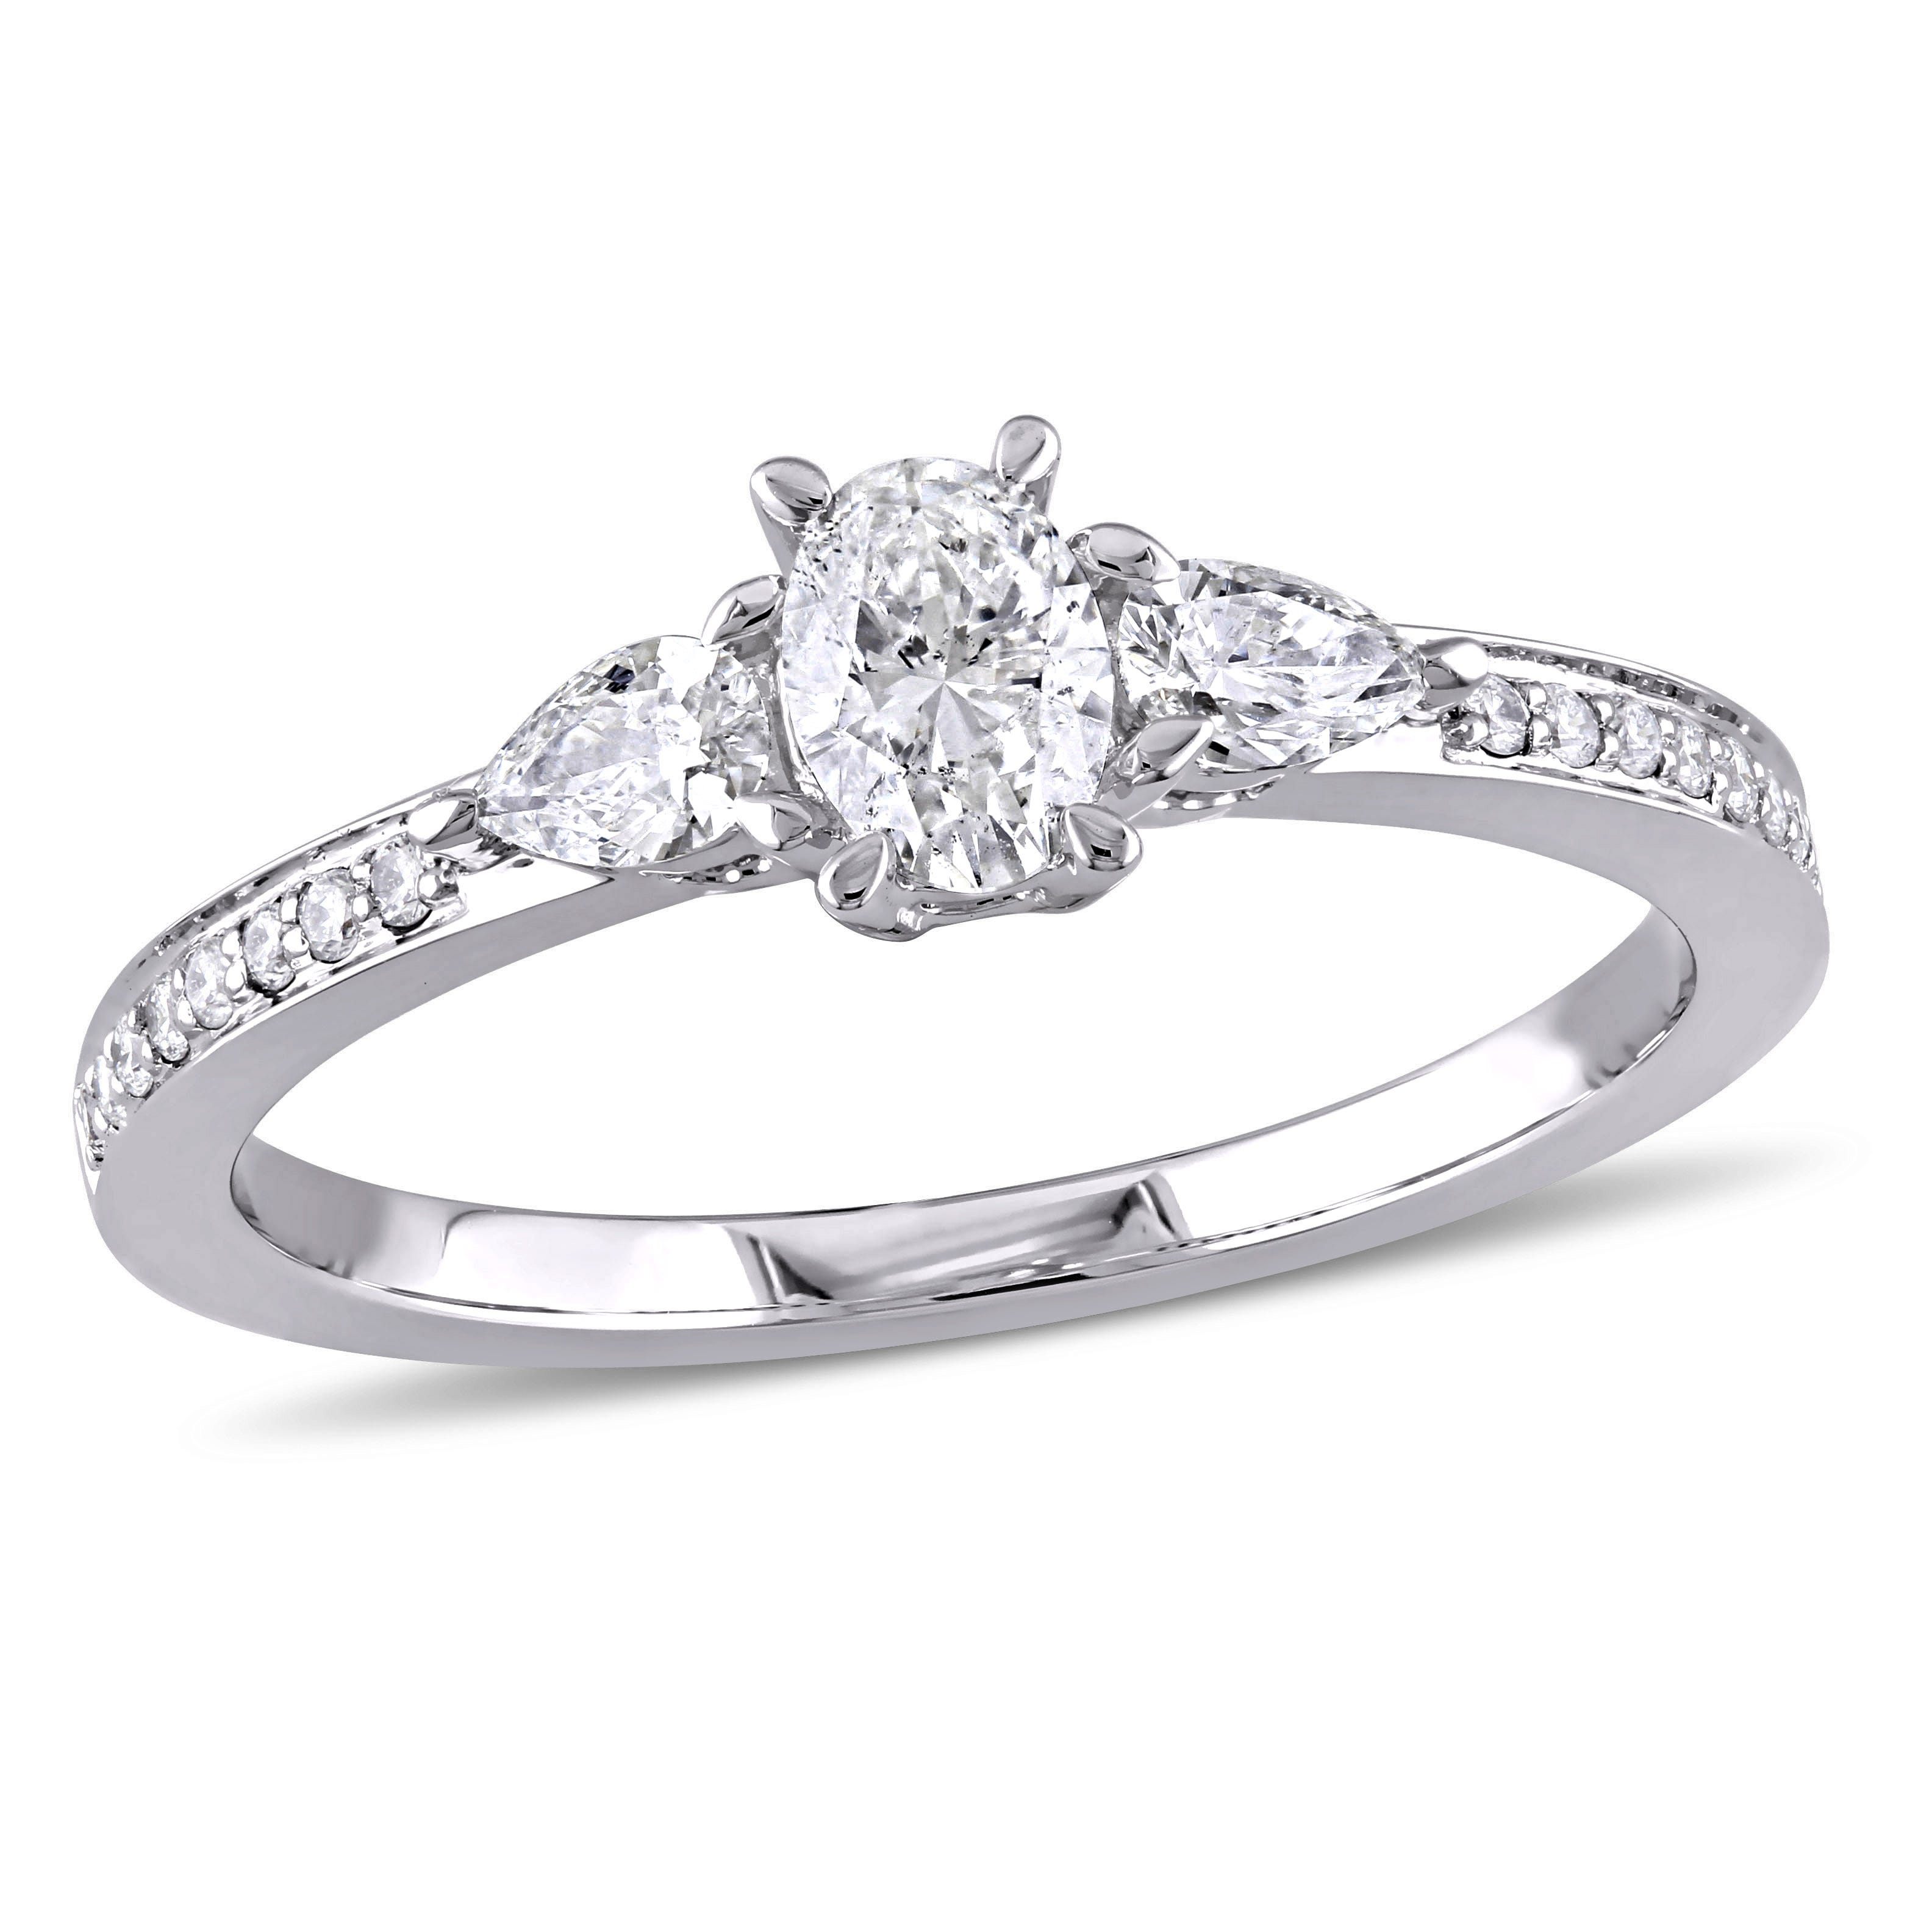 Three-Stone Oval & Pear 3/5ctw. Diamond Engagement Ring in 14k White Gold